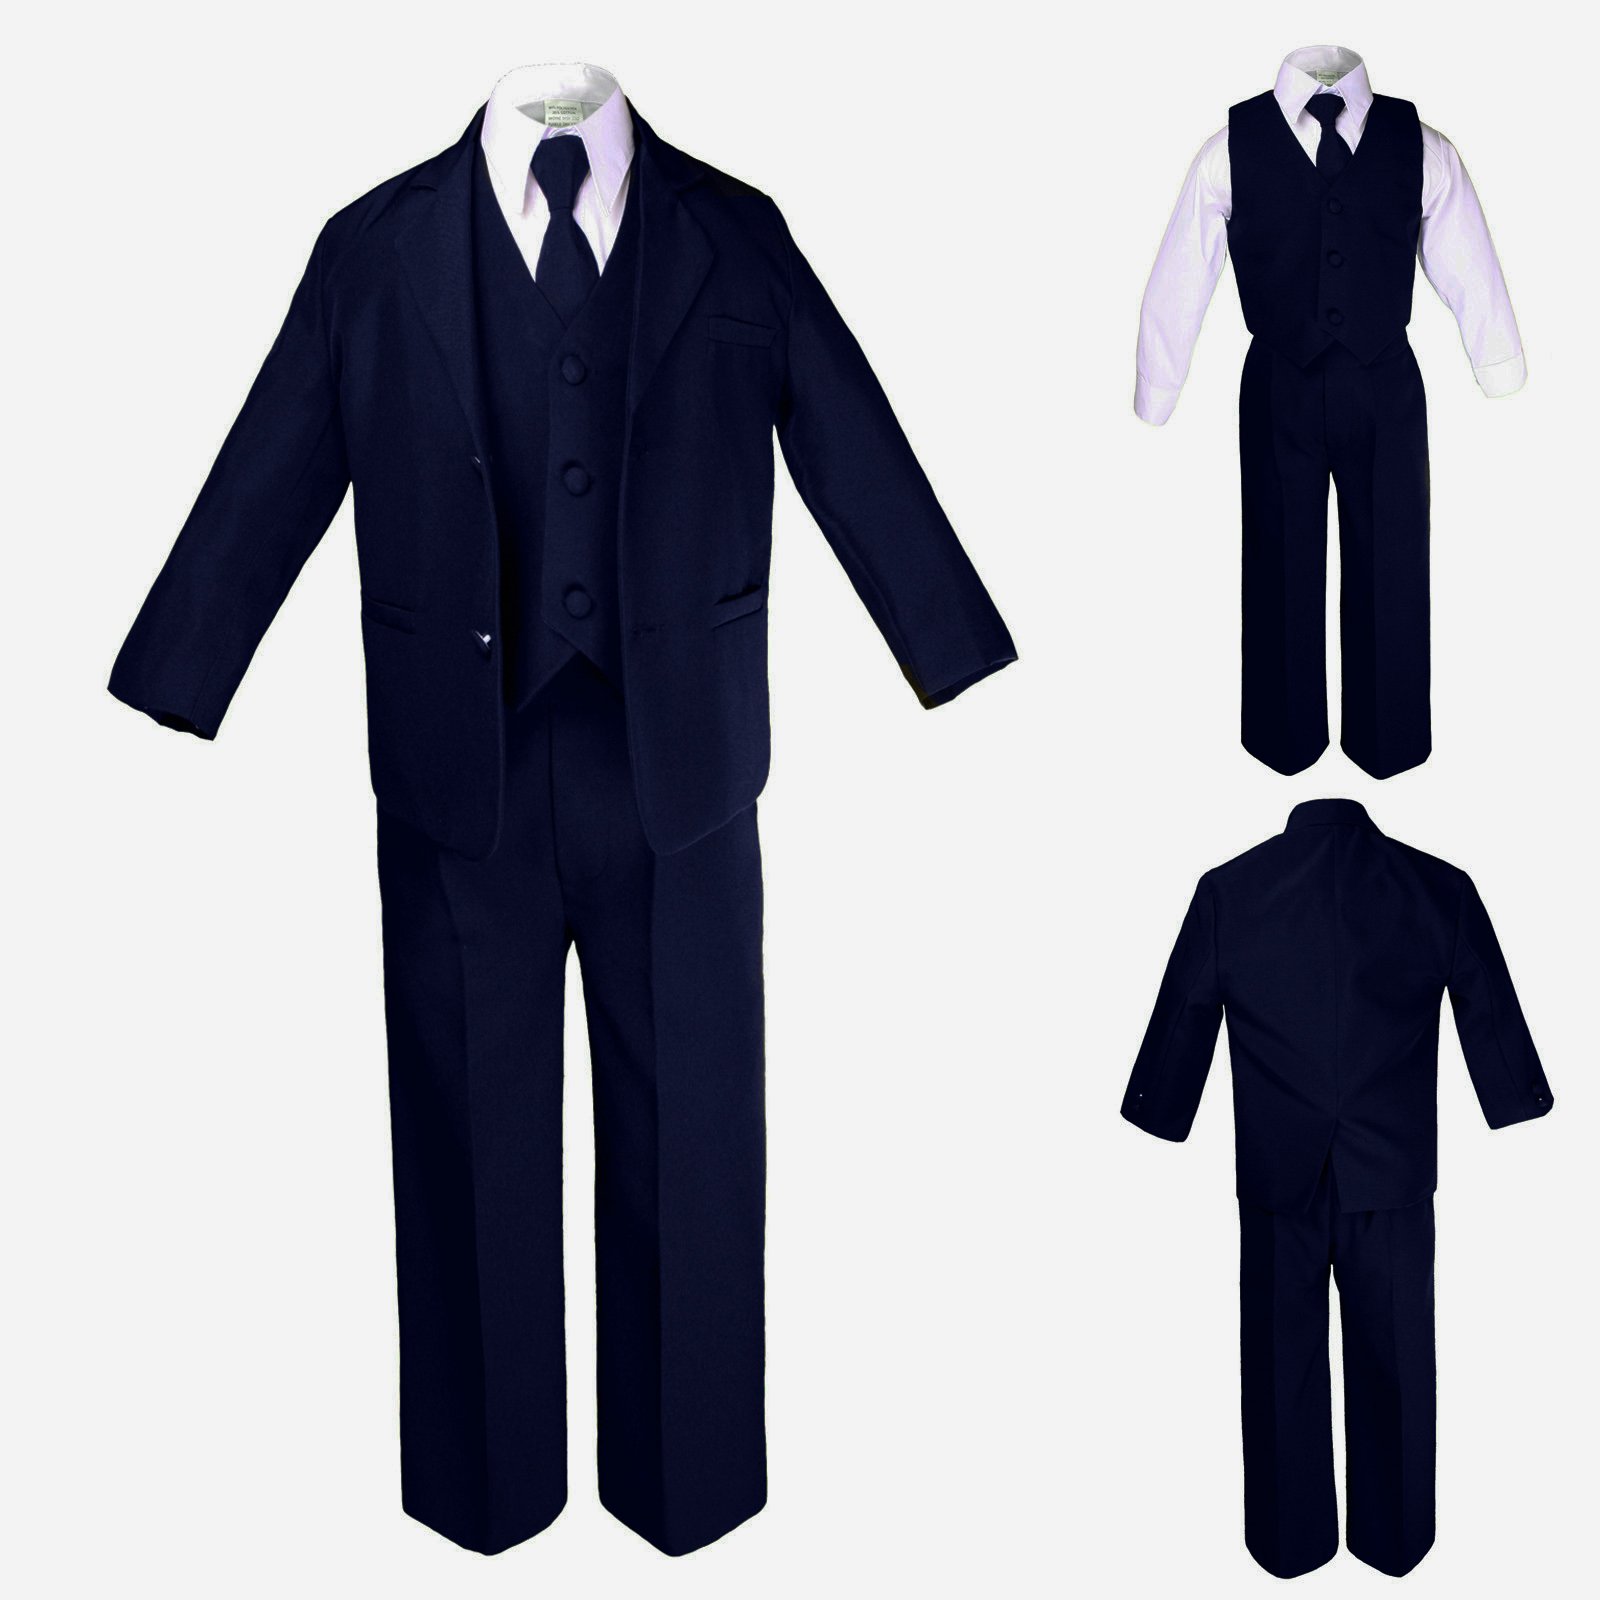 ee1207905160 New Boy Baby Toddler Teen Formal Wedding Party Navy 5pc Suit Tuxedo ...